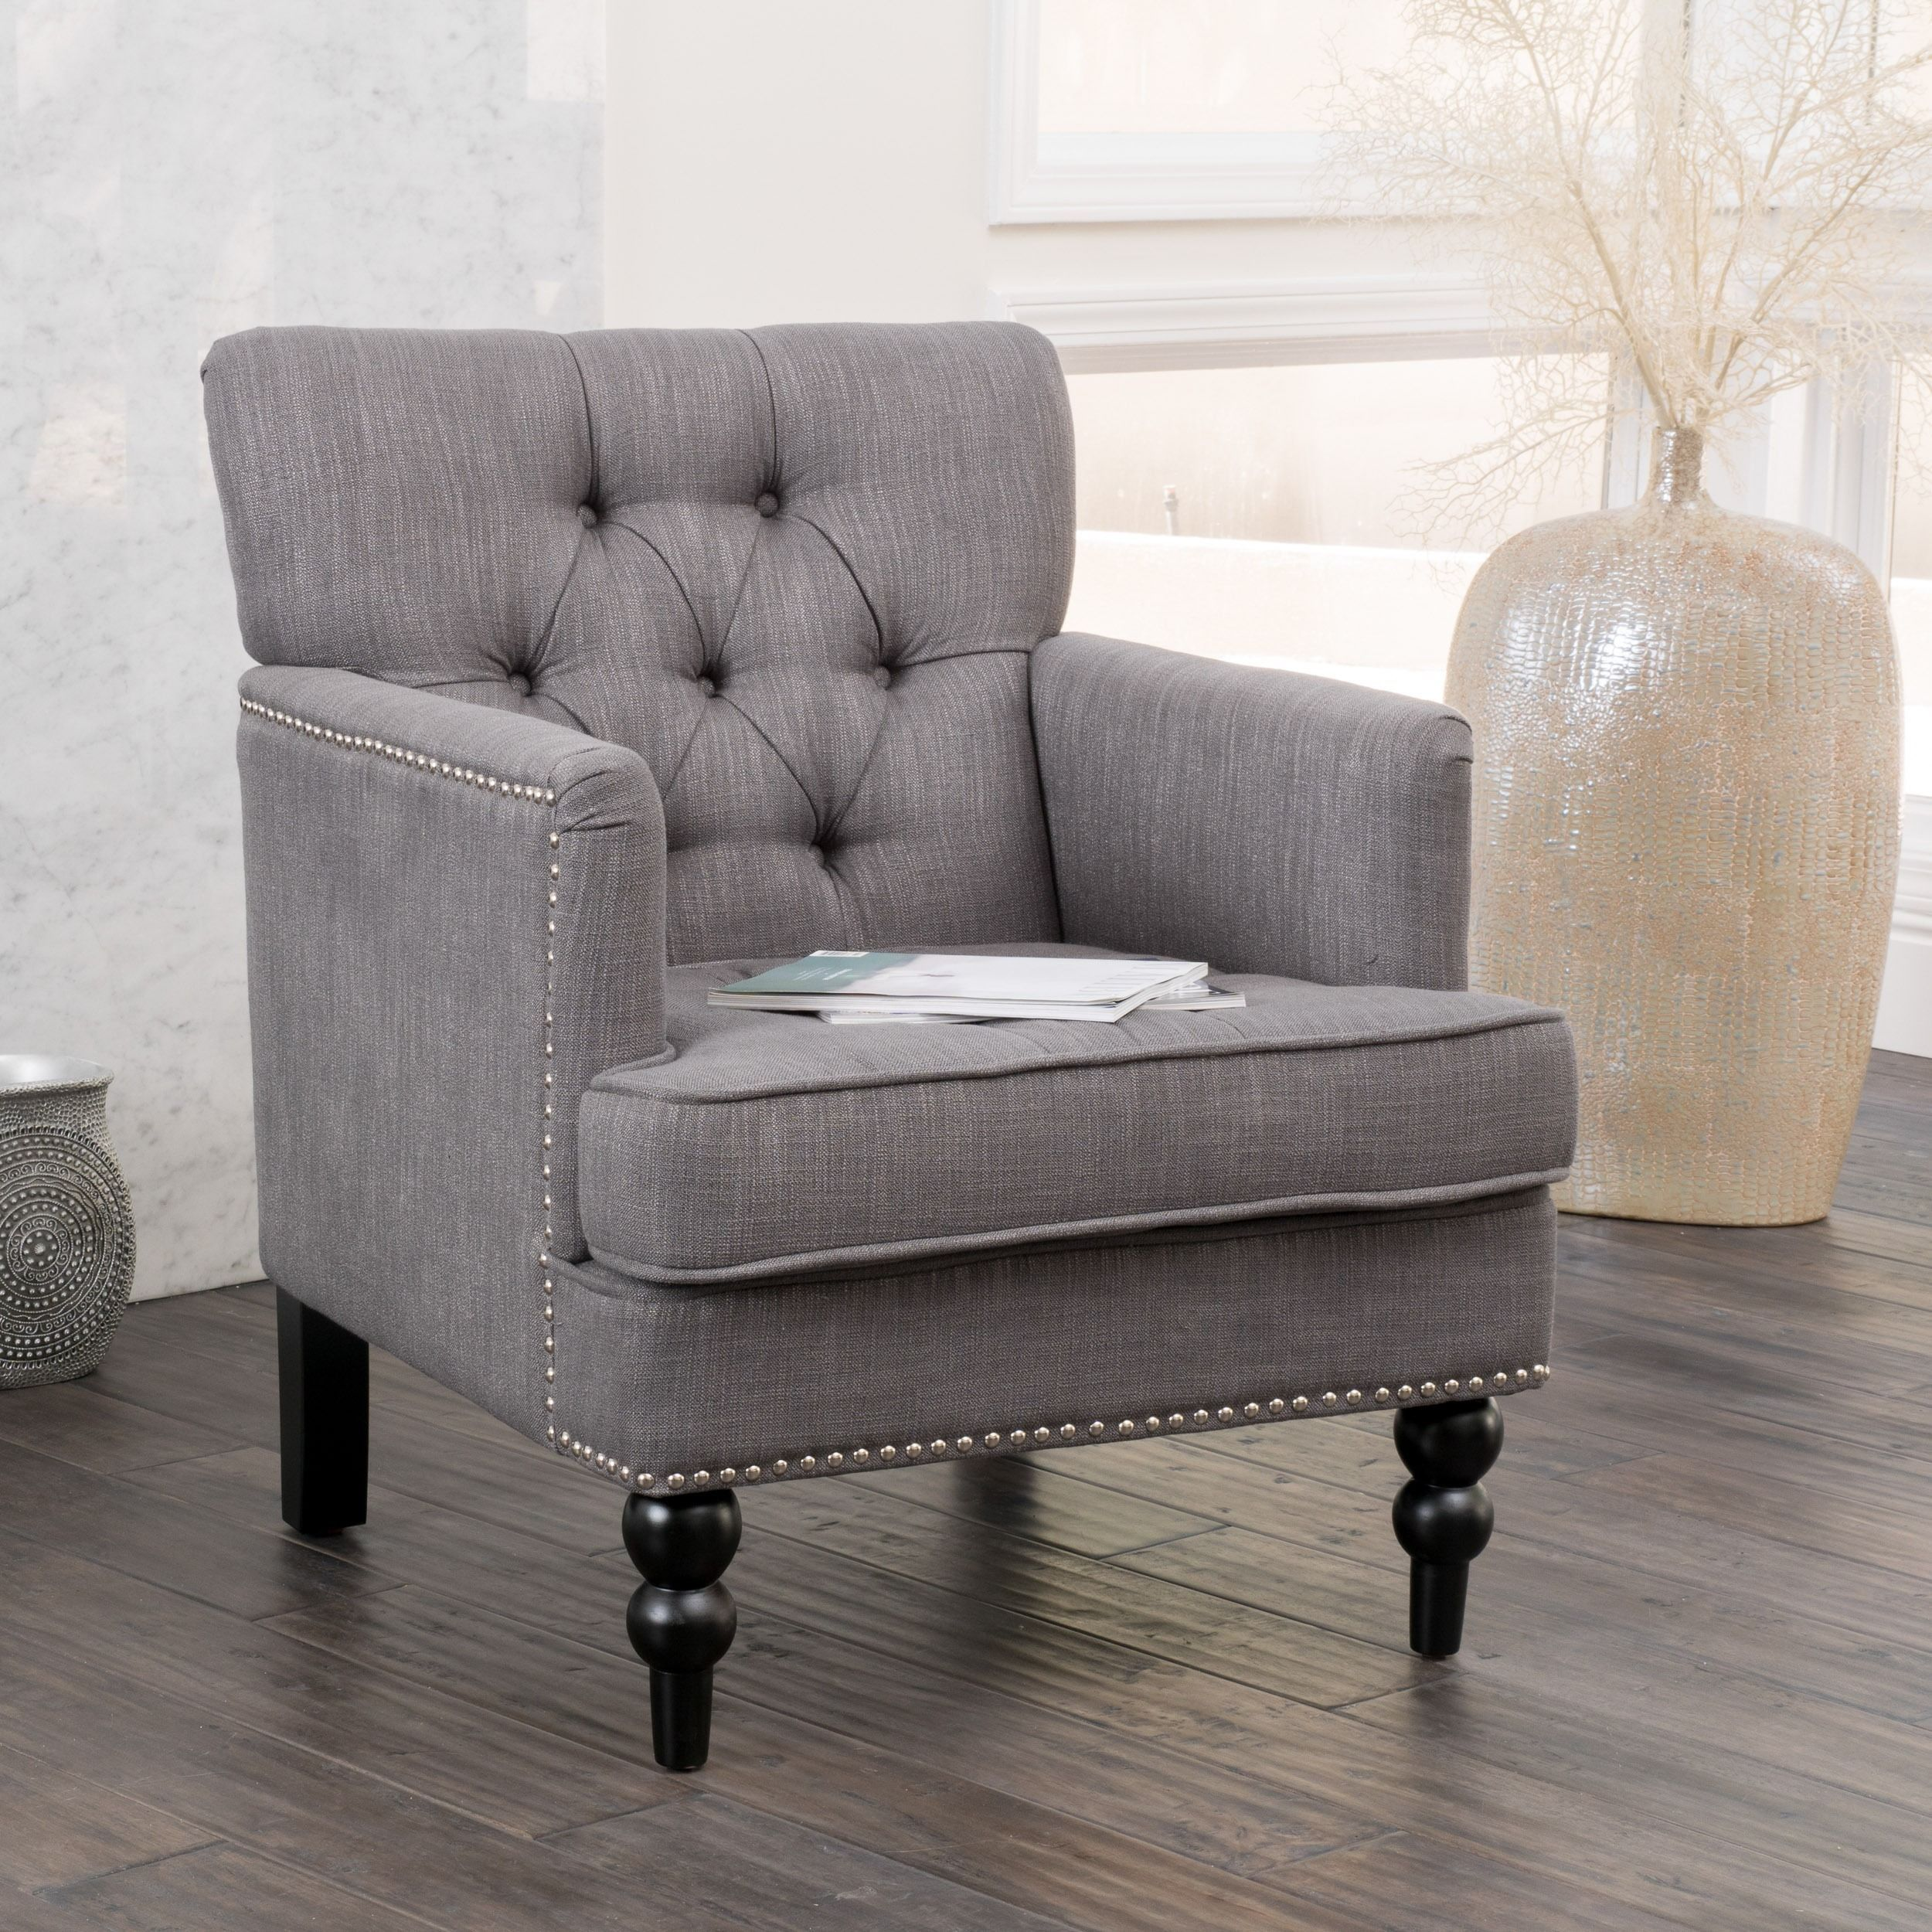 Overstock Furniture Clearance: Malone Charcoal Grey Club Chair By Christopher Knight Home